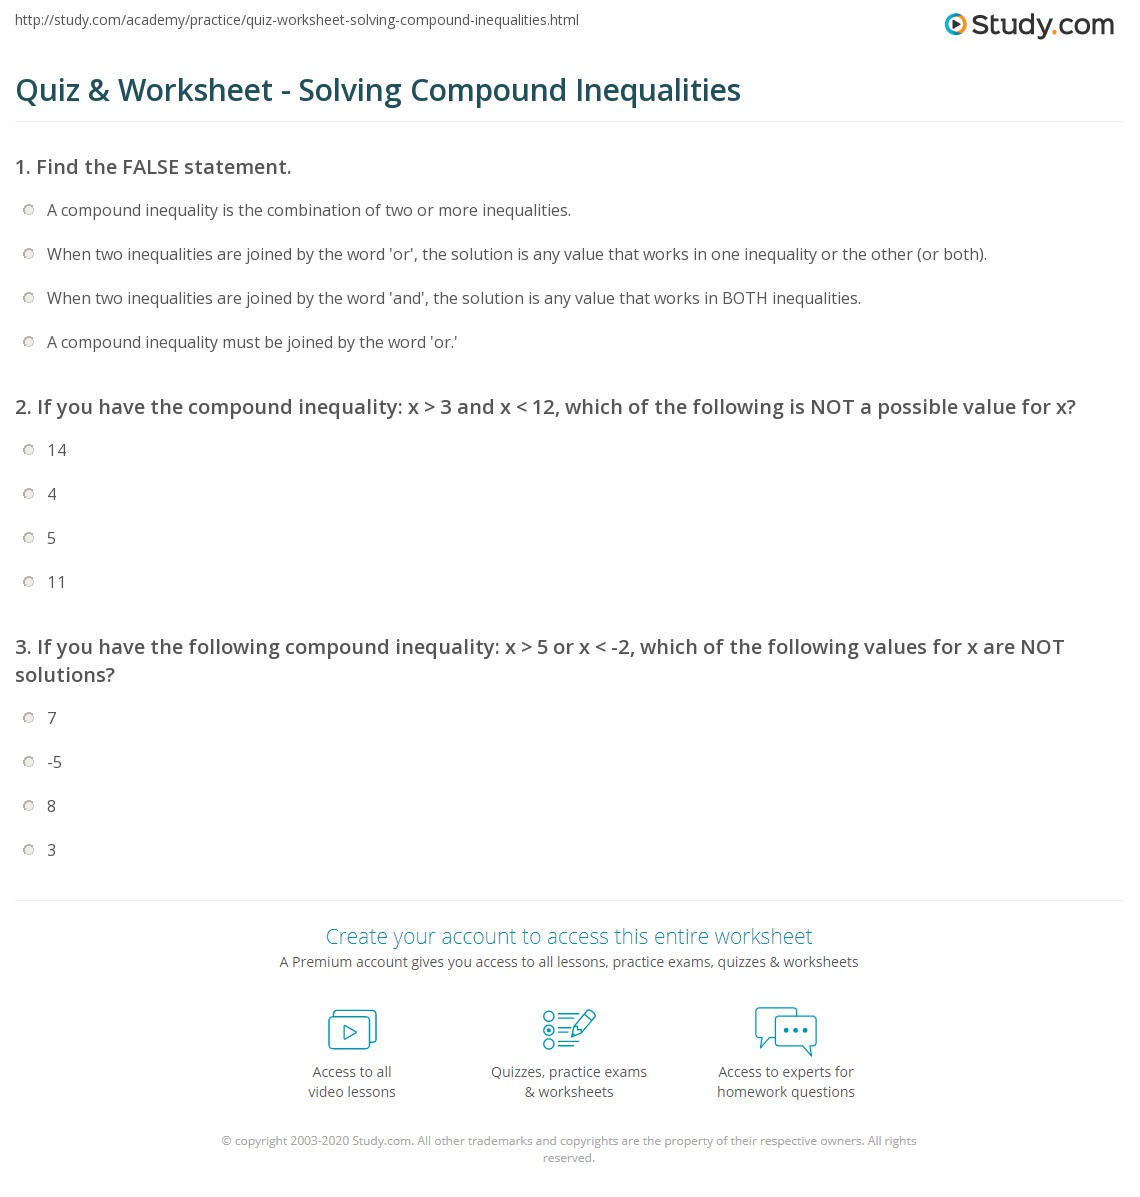 Quiz & Worksheet - Solving Compound Inequalities | Study.com